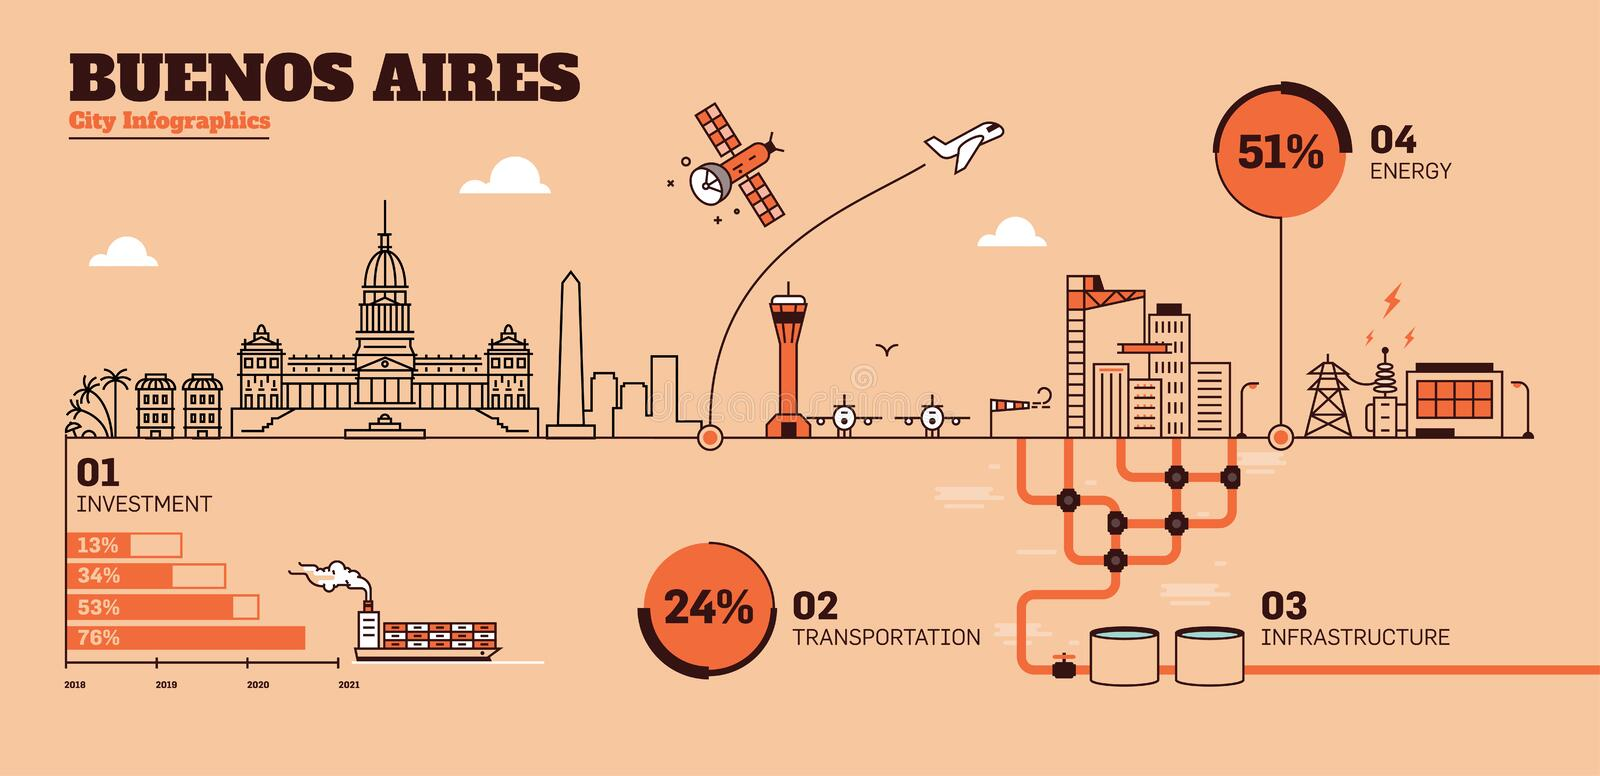 Buenos Aires City Flat Design Infrastructure Infographic Template royalty free illustration